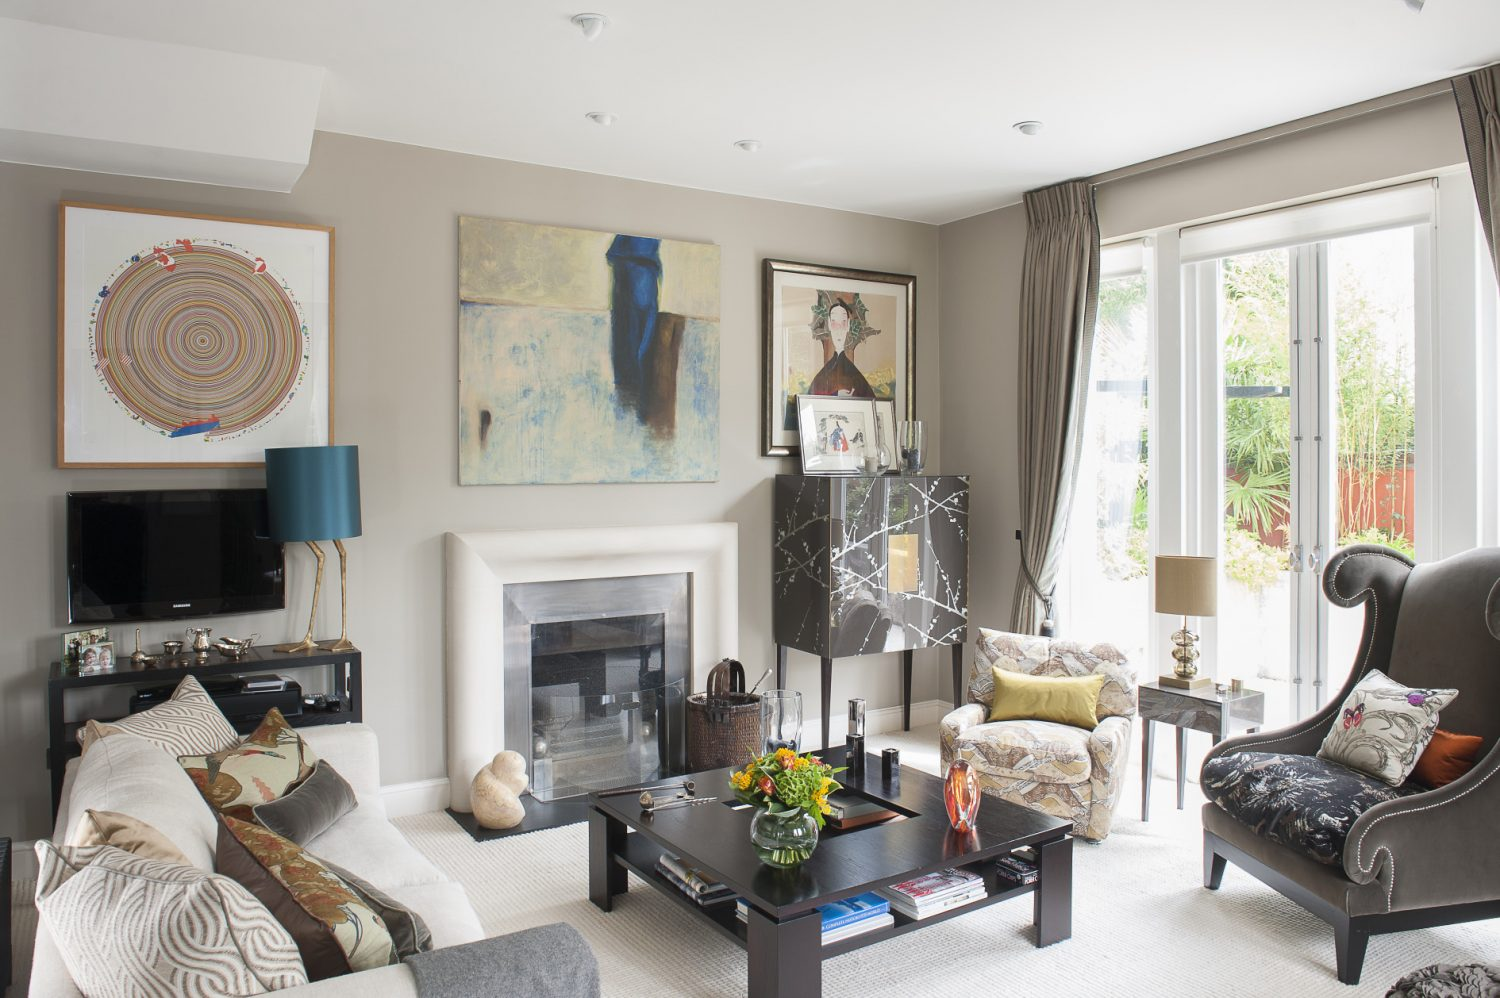 The drawing room has glass doors opening on to a courtyard. The fireplace is finished with a Chesney's limestone surround and stainless steel insert. Jane and Chris are keen art collectors. They bought the abstract painting above the fire during a holiday in Sri Lanka. The Modigliani-style portrait is by a Vietnamese artist, found at an Affordable Art Fair. The duck feet lamp is by Porto Romana